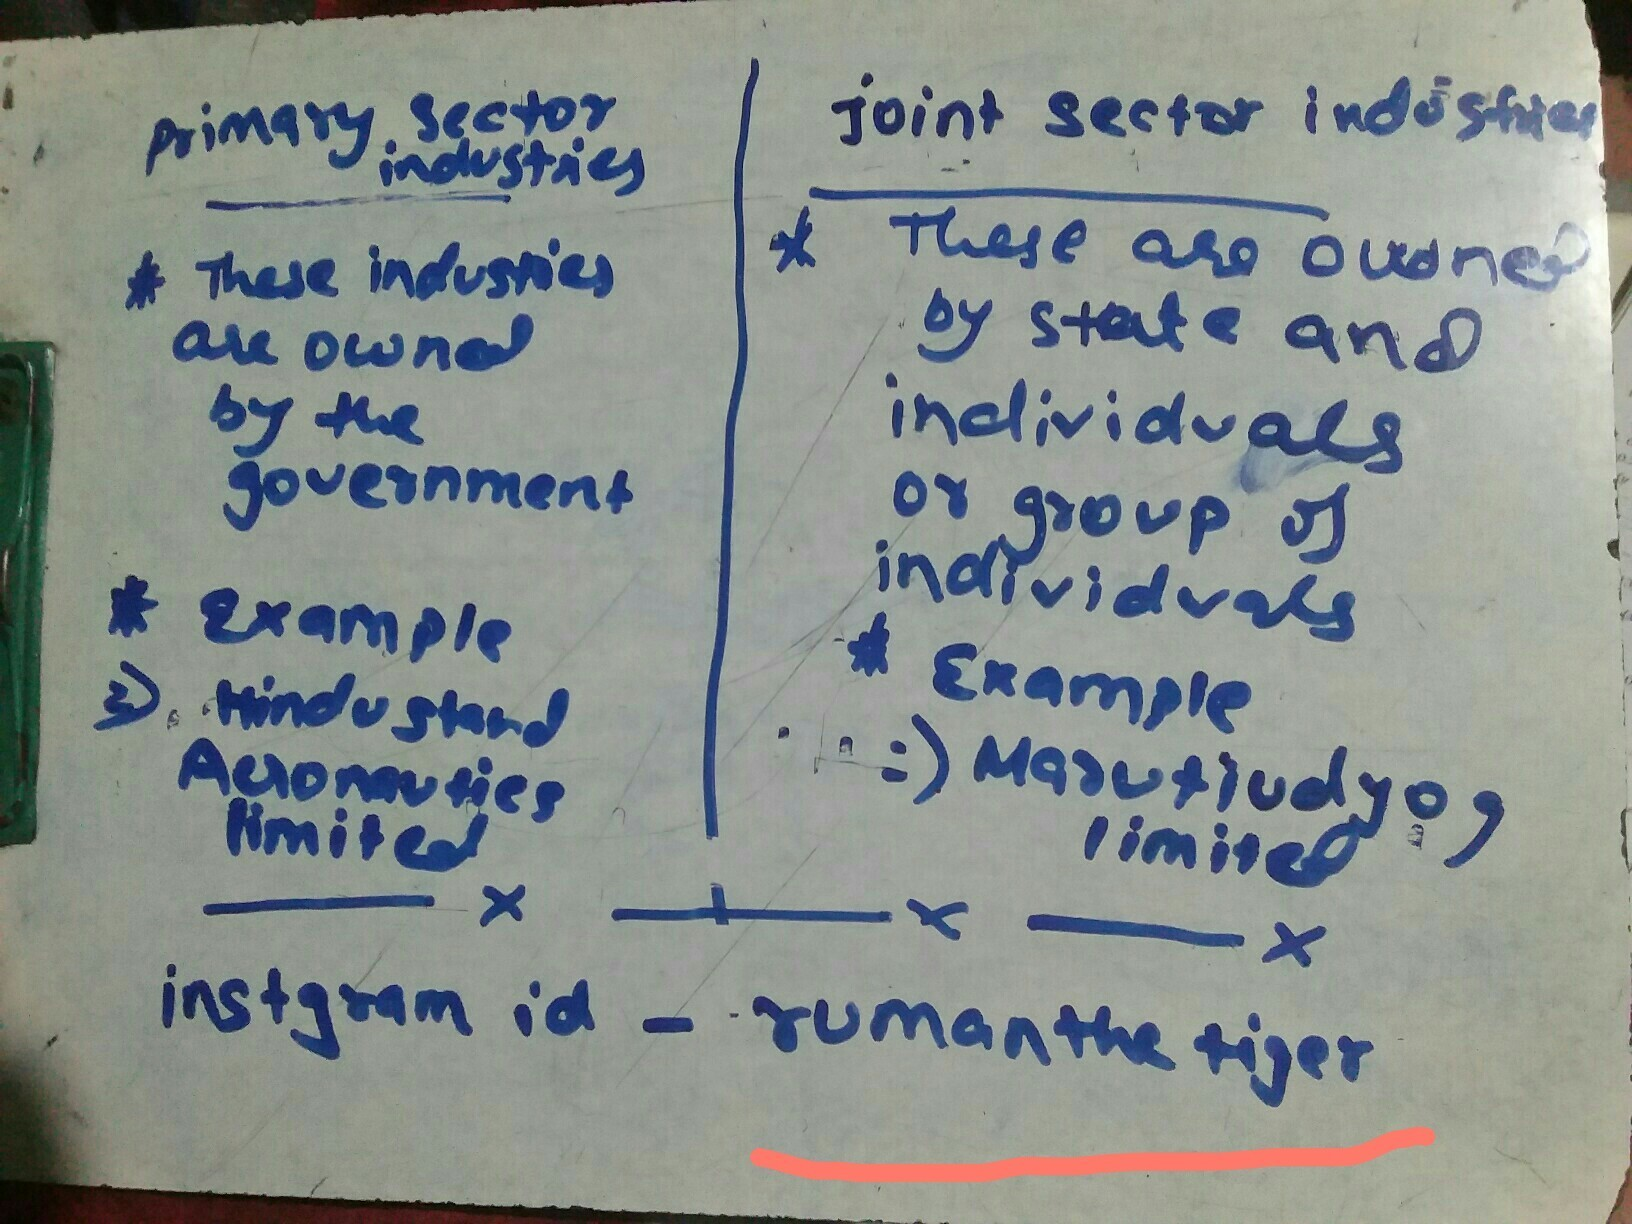 joint sector